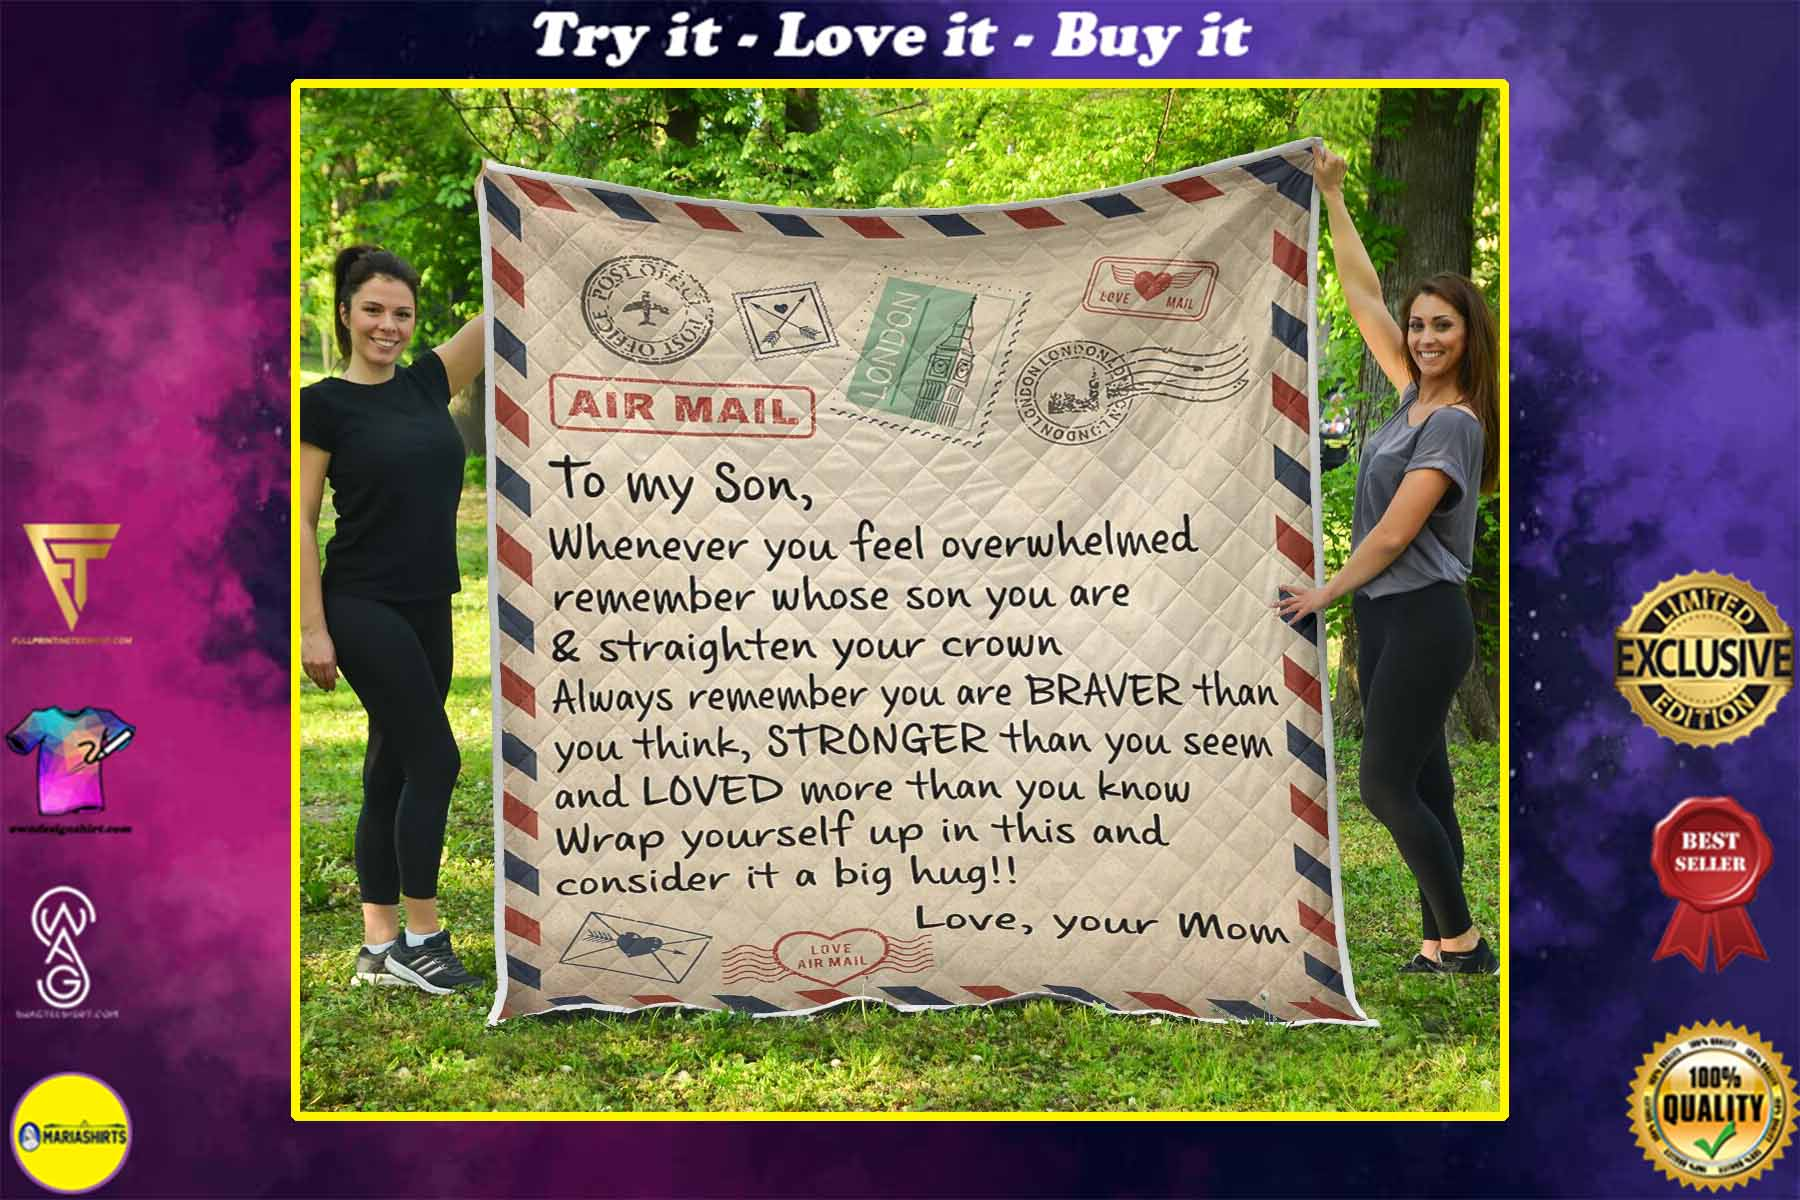 air mail letter to my son always remember you are braver than you think your mom quilt